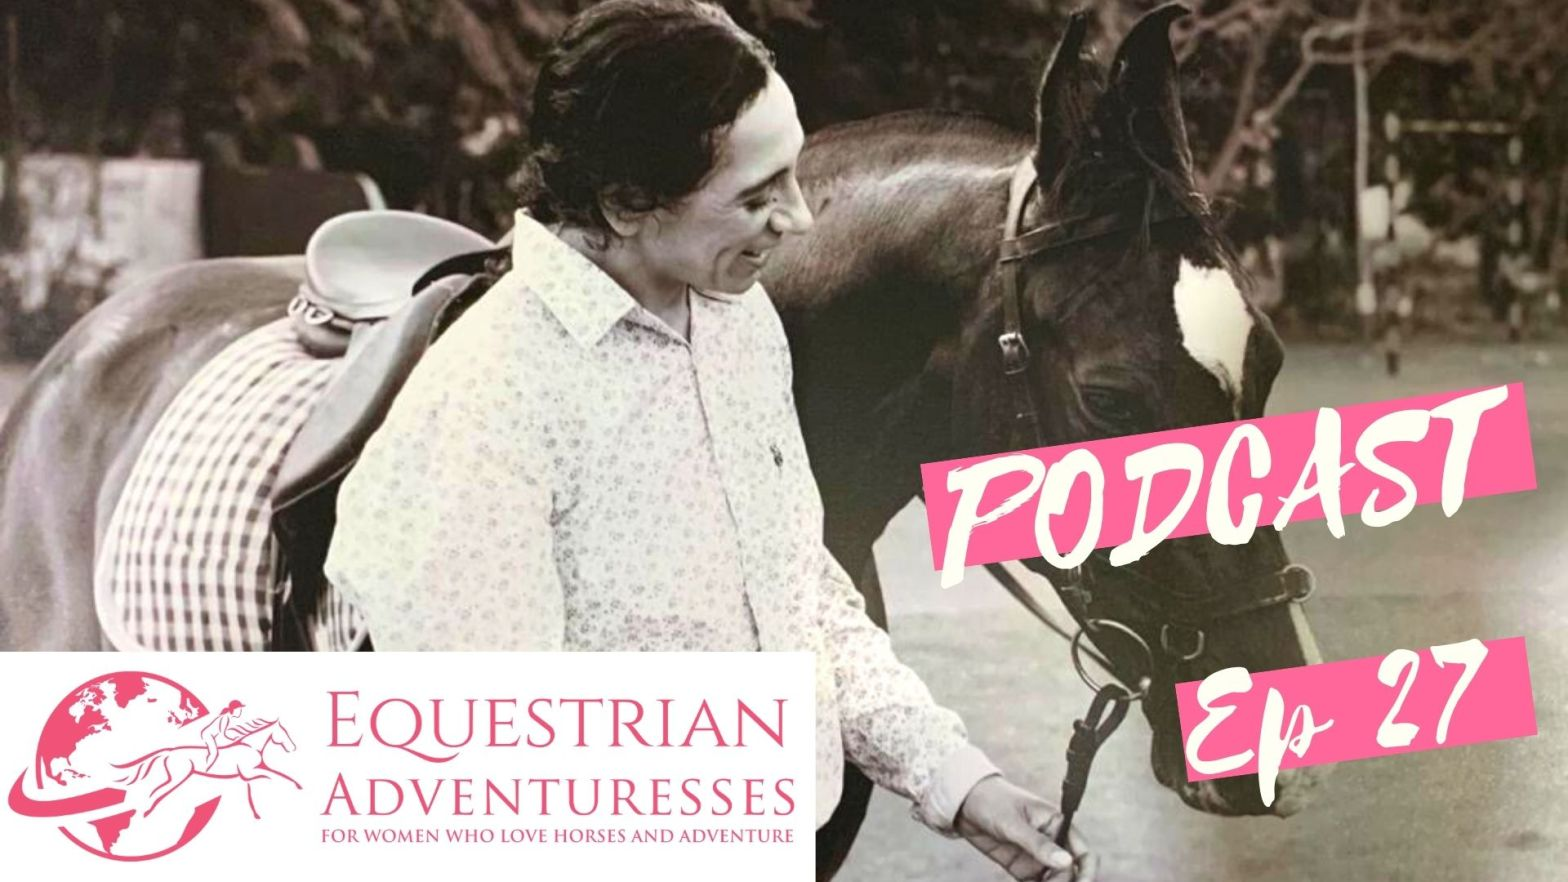 Equestrian Adventuresses Travel and Horse Podcast Ep 27 - featured: Riding an Indian Police Horse - Interview with Semra Yücel a German woman living in India